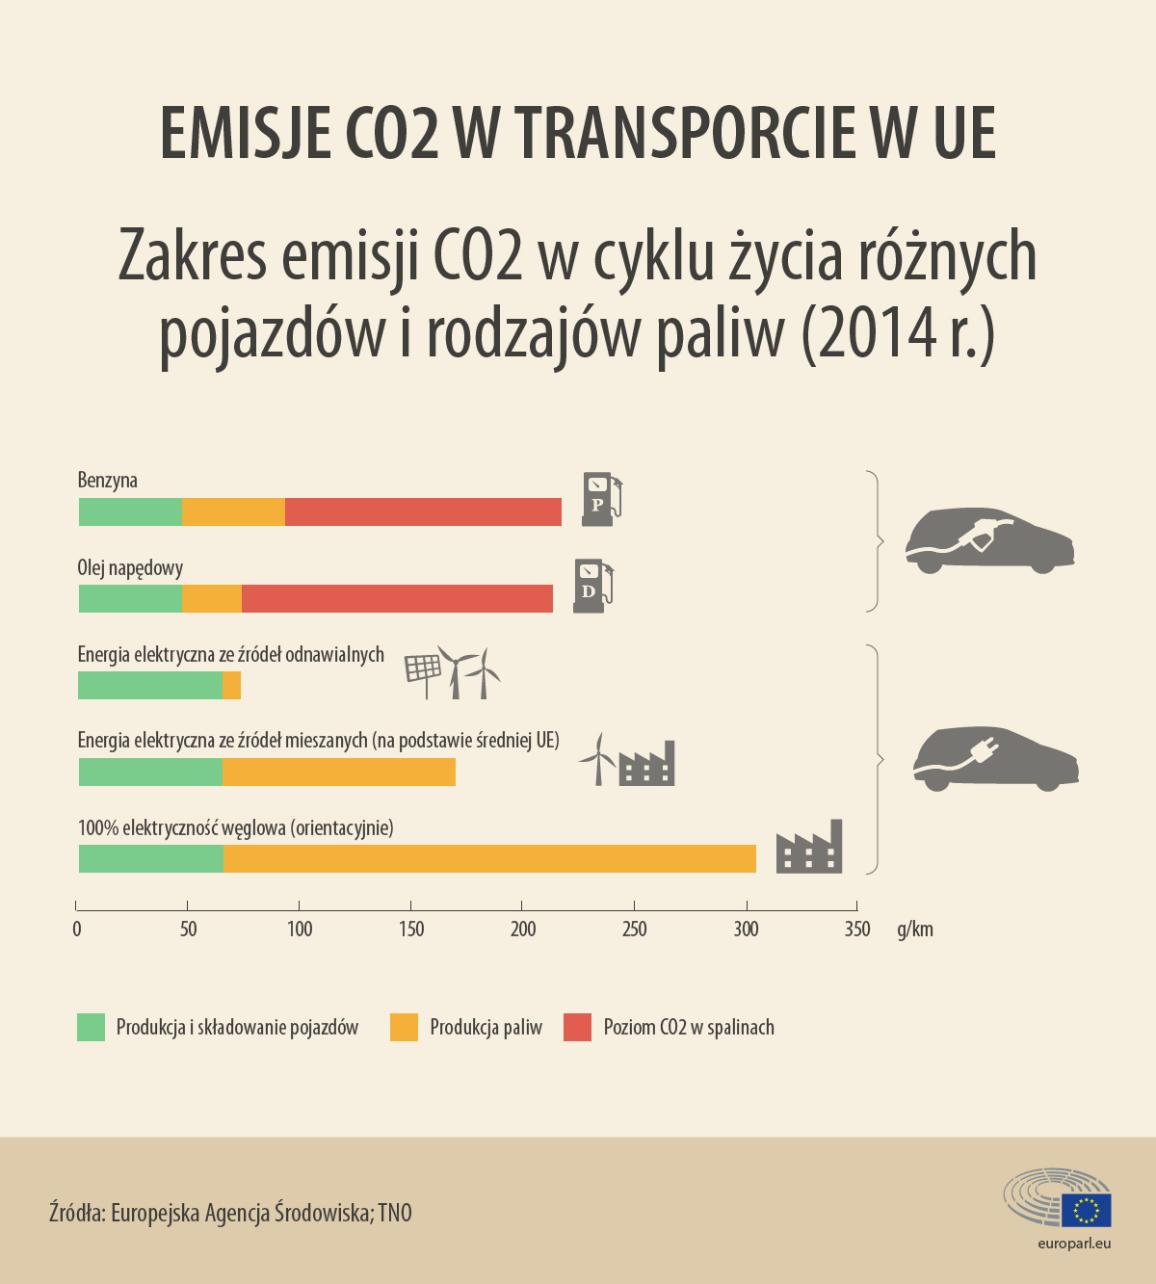 infographic on CO2 emission in the European Union